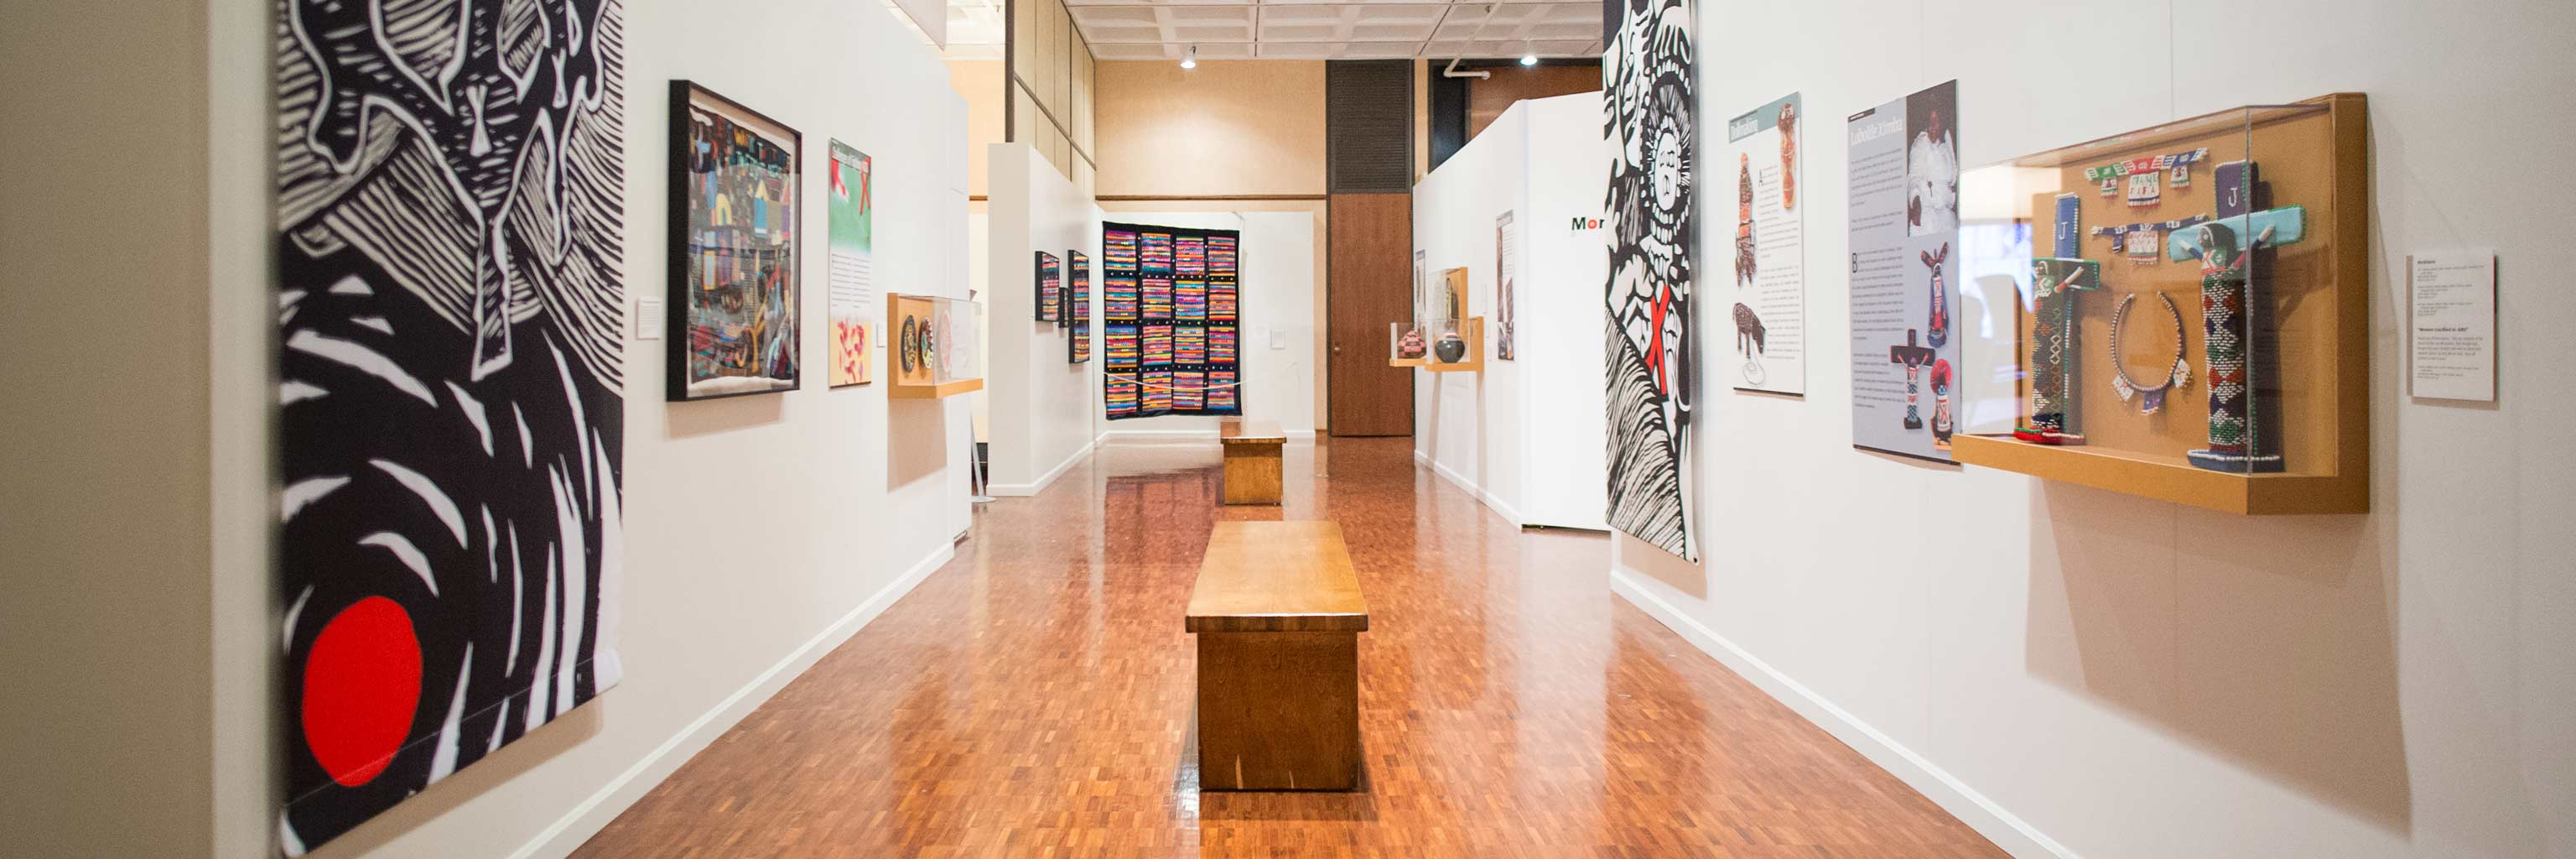 Image of a gallery on the Indiana University Bloomington campus.